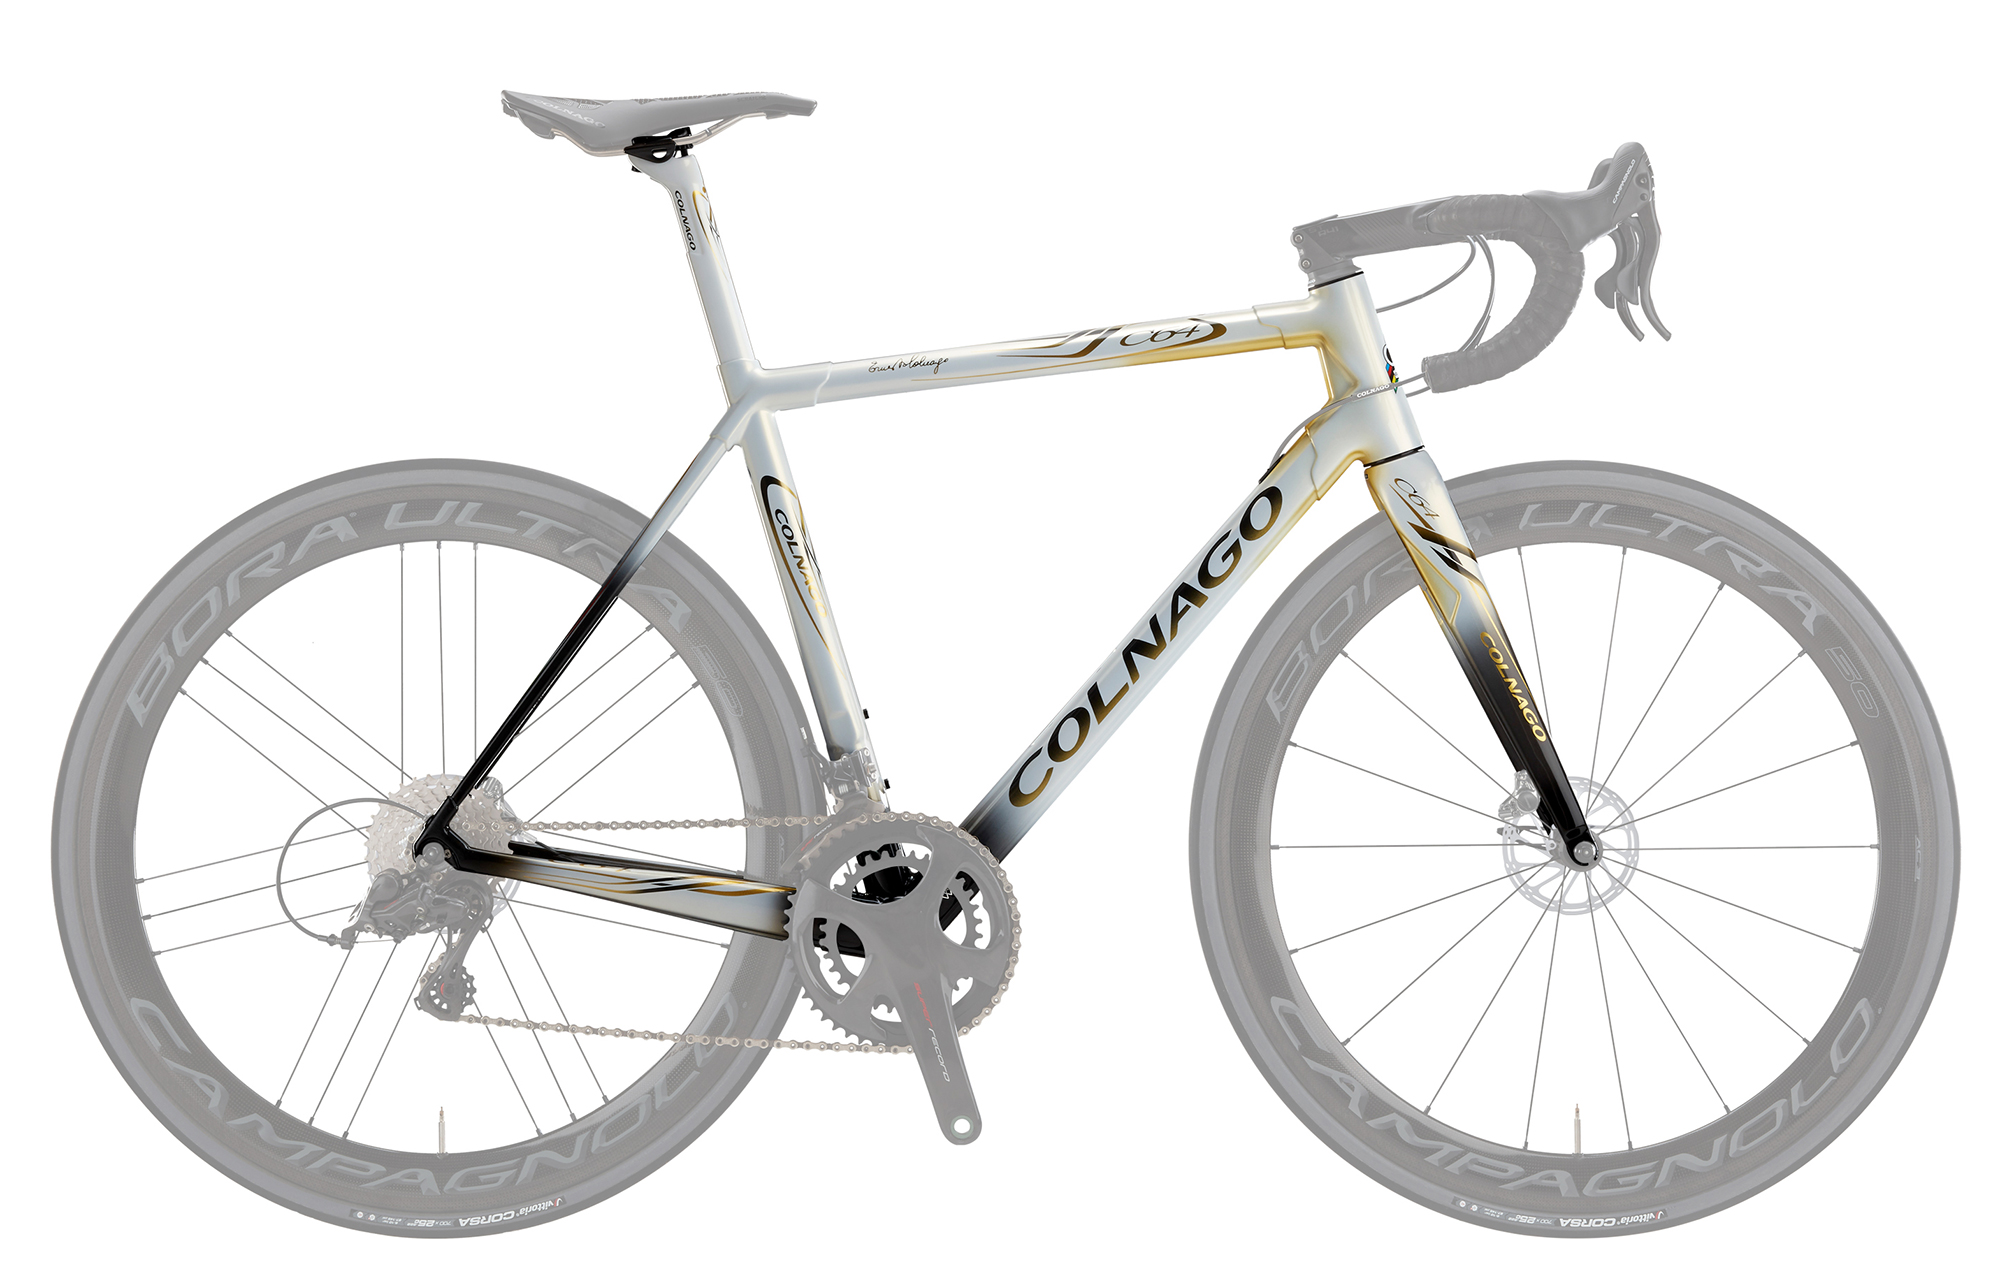 1d1edcaab7d Colnago C64 Disc Daytona Pro+ Bike | R&A Cycles